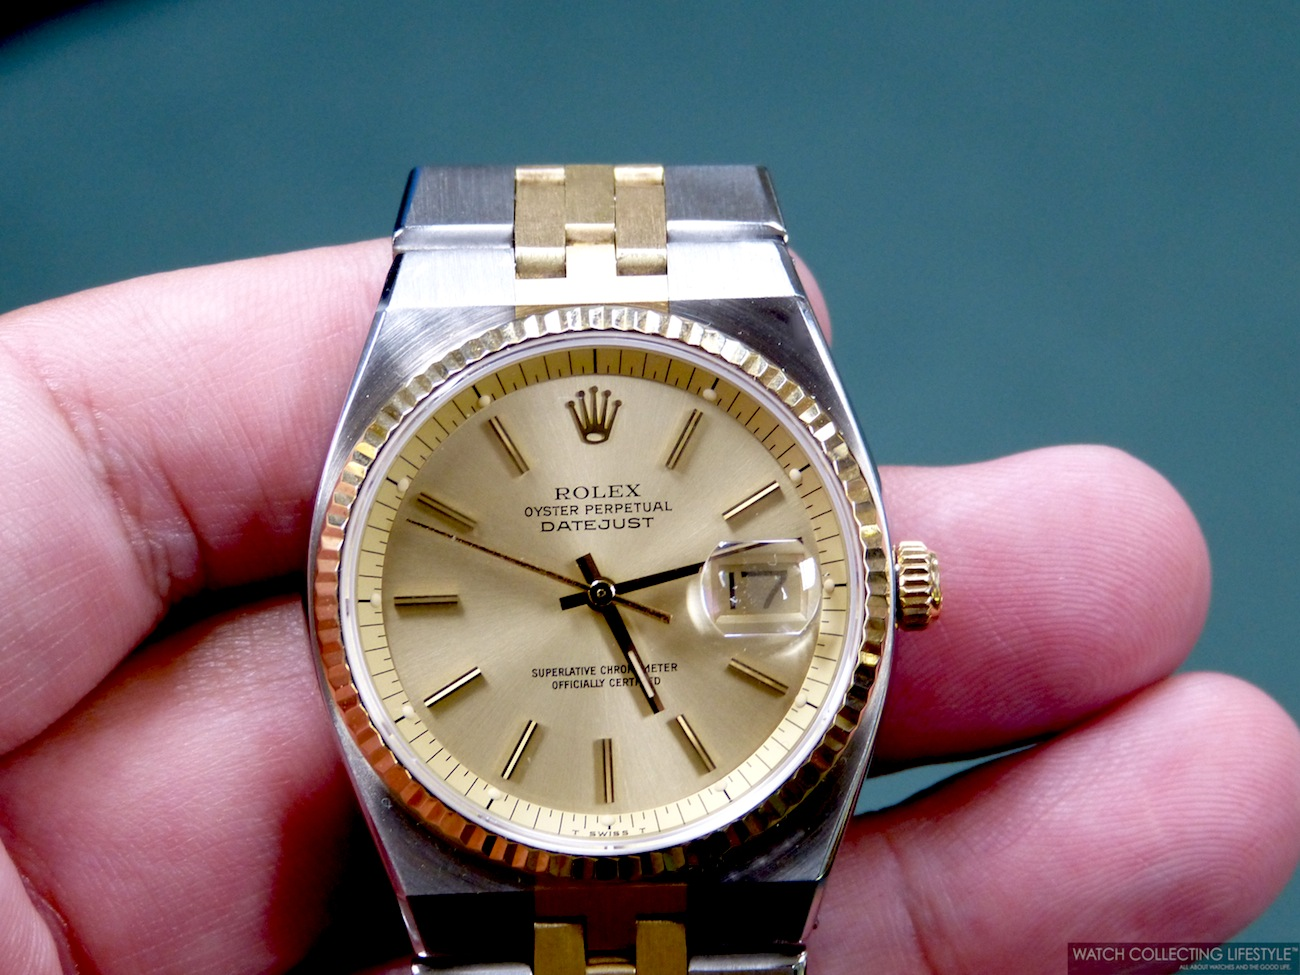 Rare Bird Rolex Oyster Perpetual Datejust Ref 1630 The Datejust